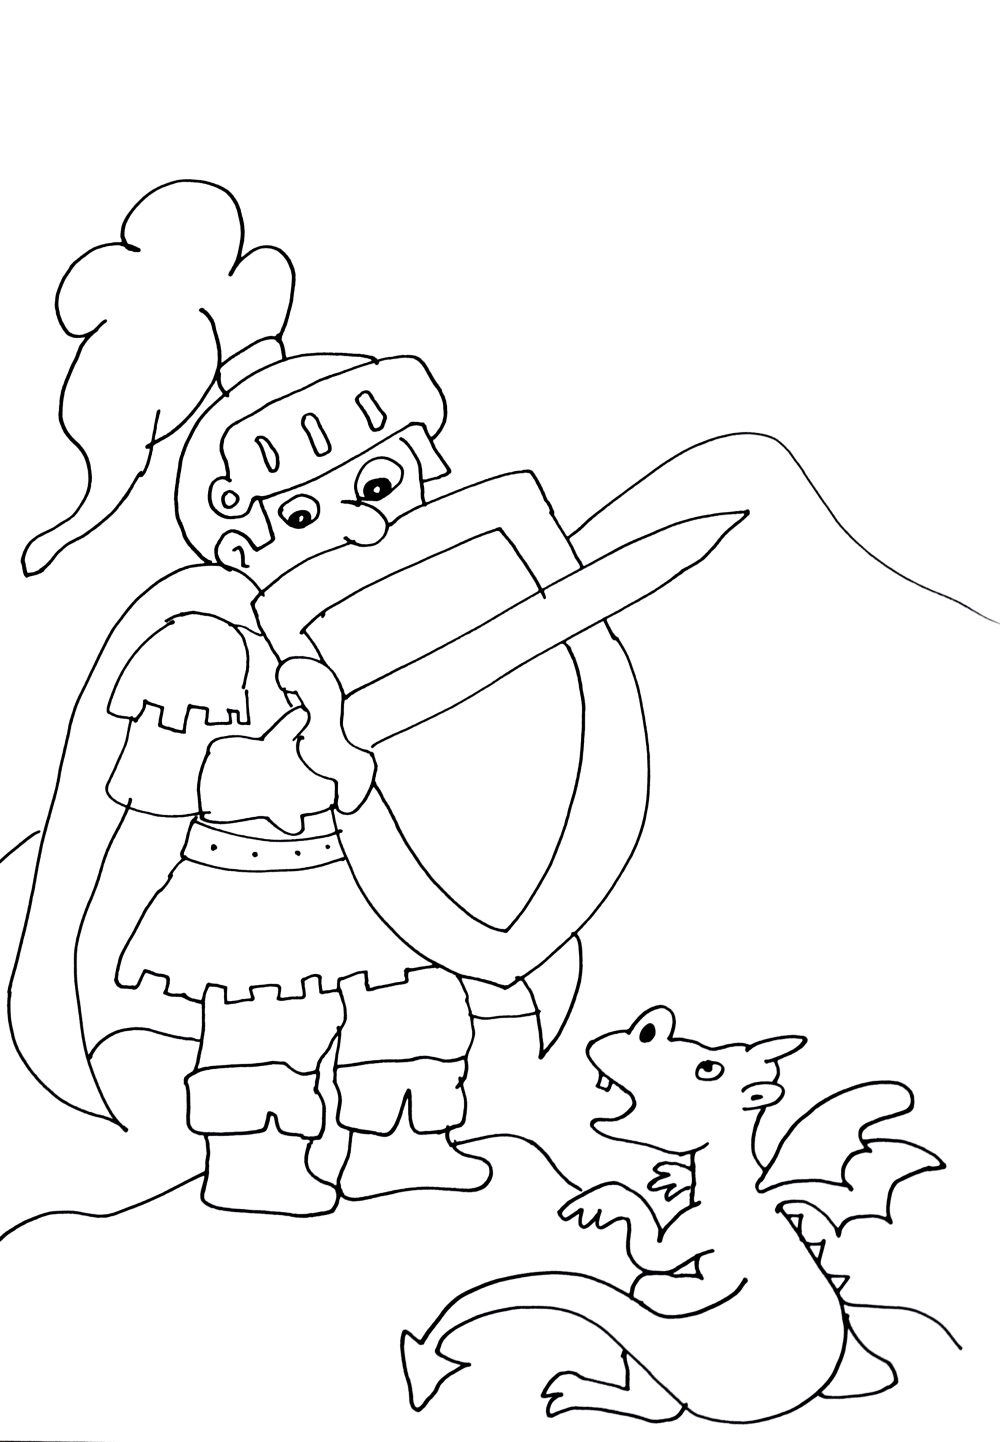 Funny Knights And Dragons Coloring Page For Kids